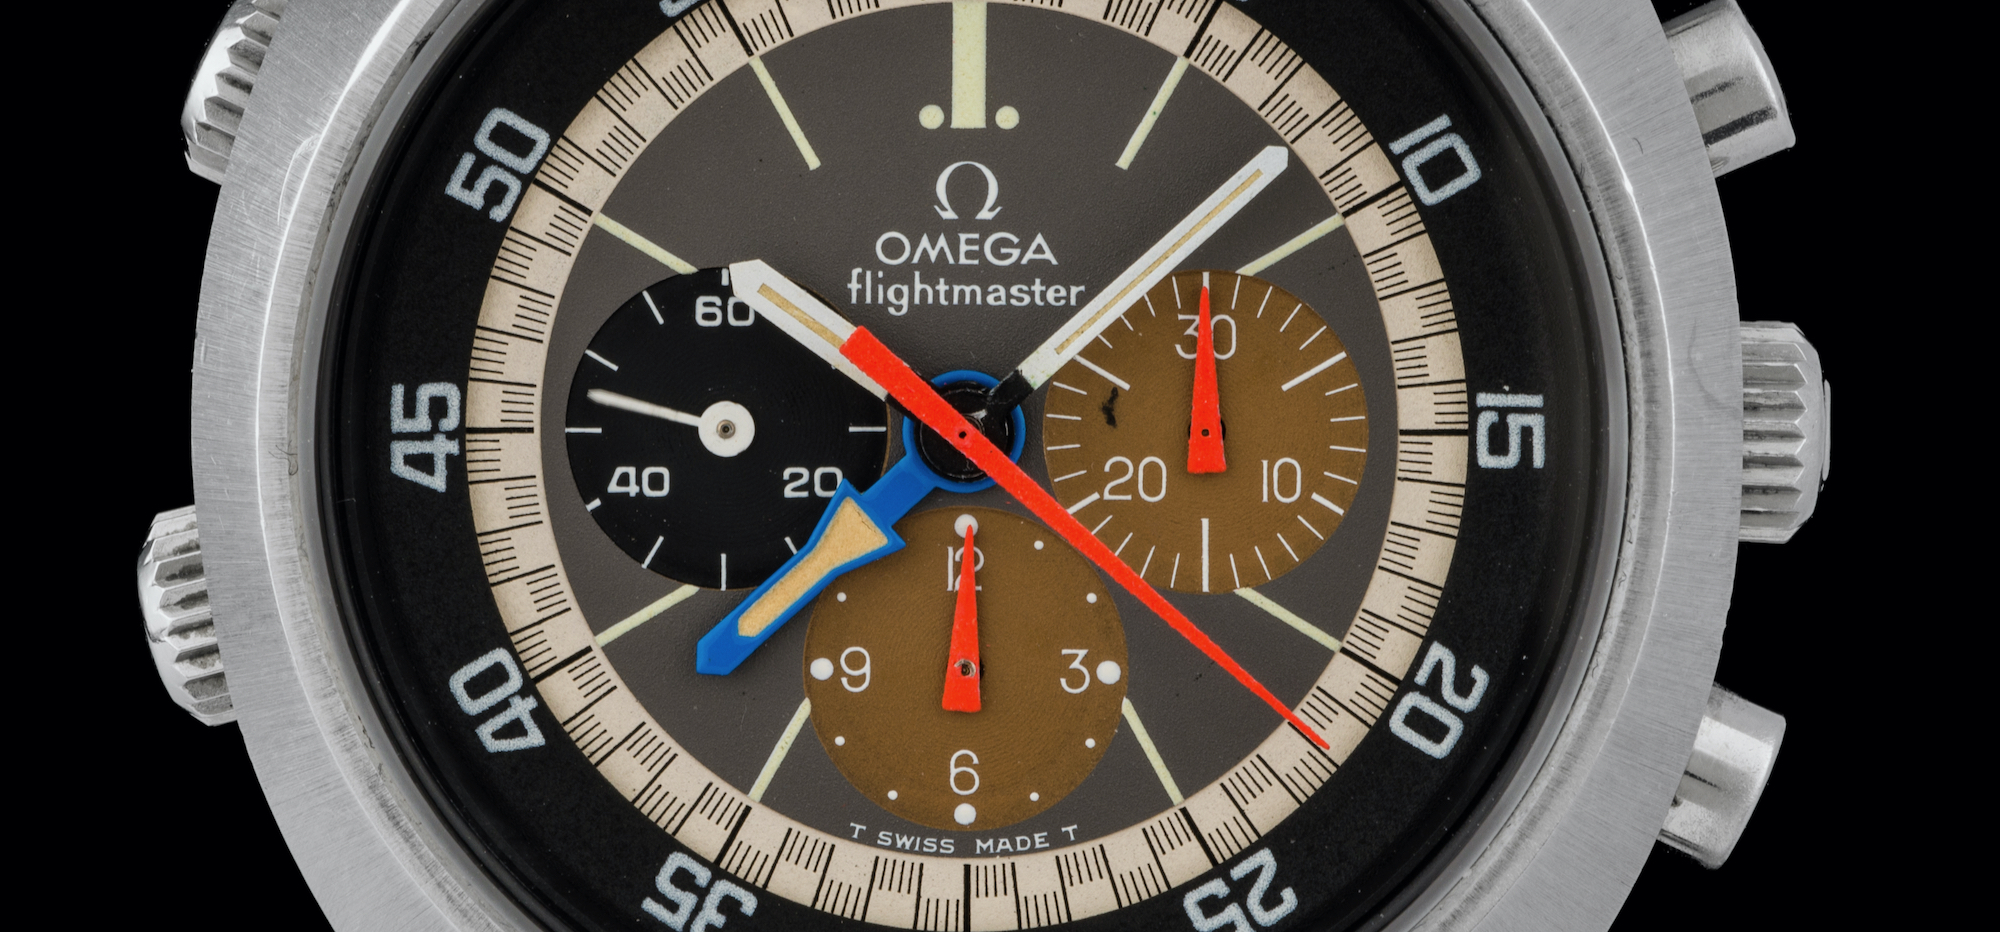 IMPORTANT UPDATES ON <BR> TRANSITIONAL FLIGHTMASTERS